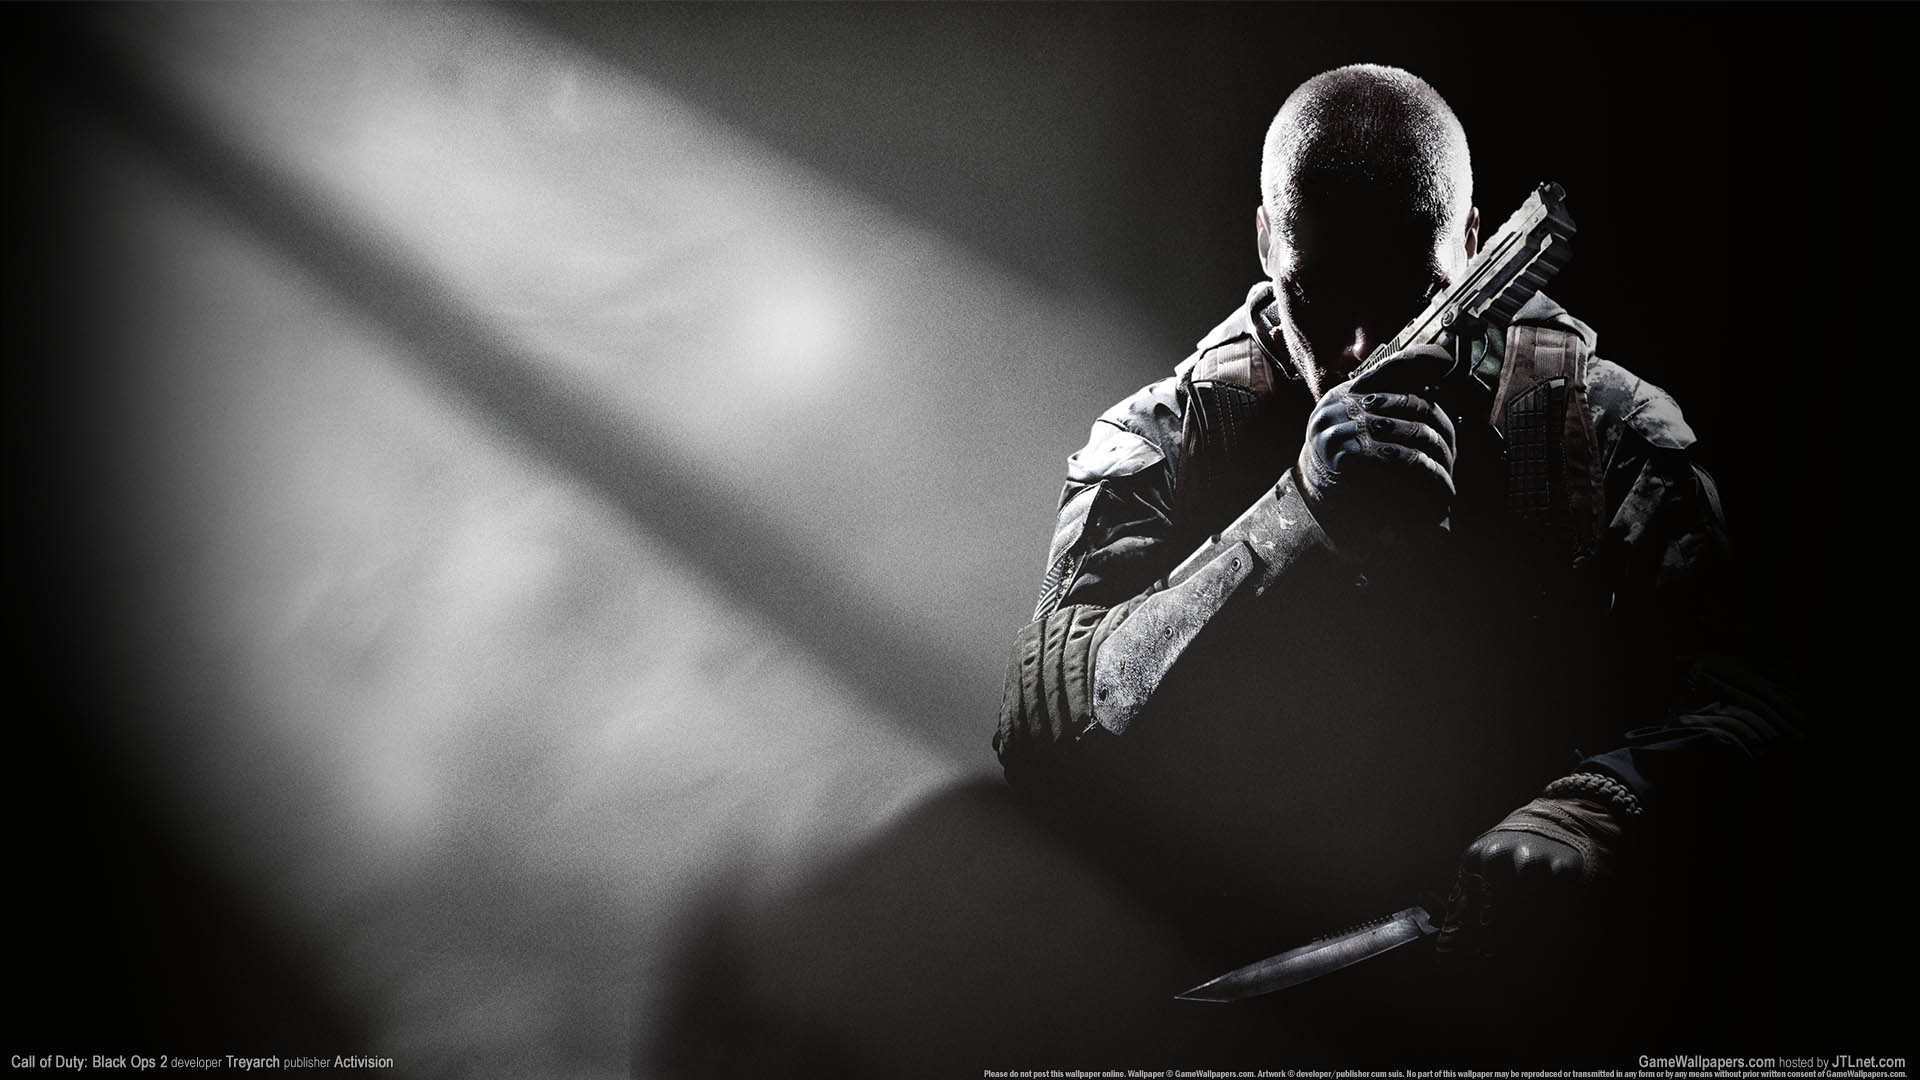 Call Of Duty Black Ops 2 Wallpaper 01 1920x1080